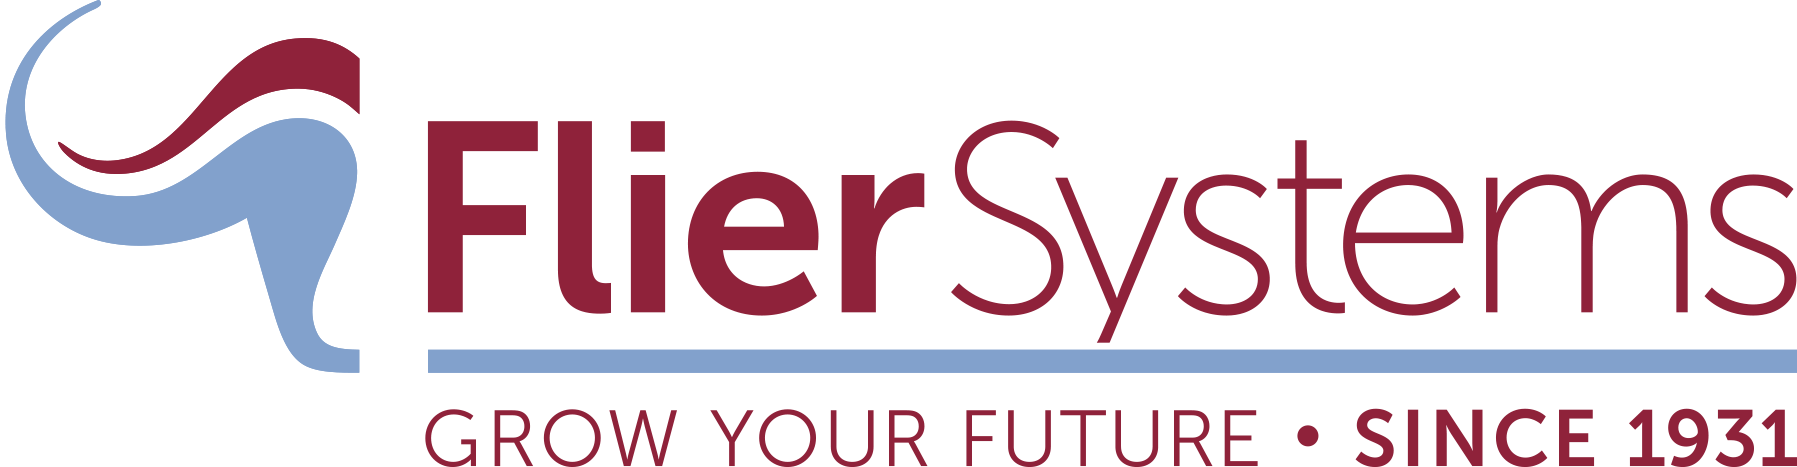 Flier Systems Logo (Transparant).png